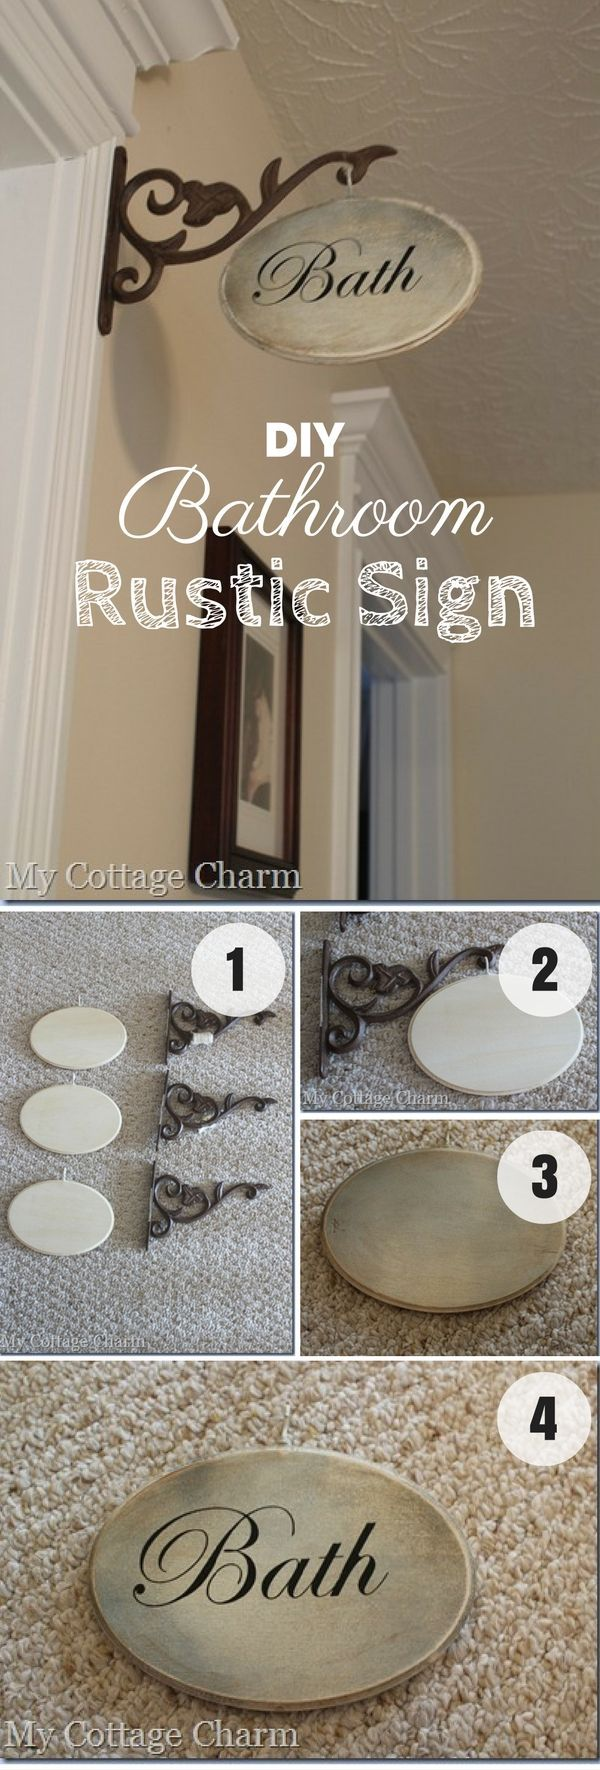 Bathroom decor ideas diy - 20 Gorgeous Diy Rustic Bathroom Decor Ideas You Should Try At Home